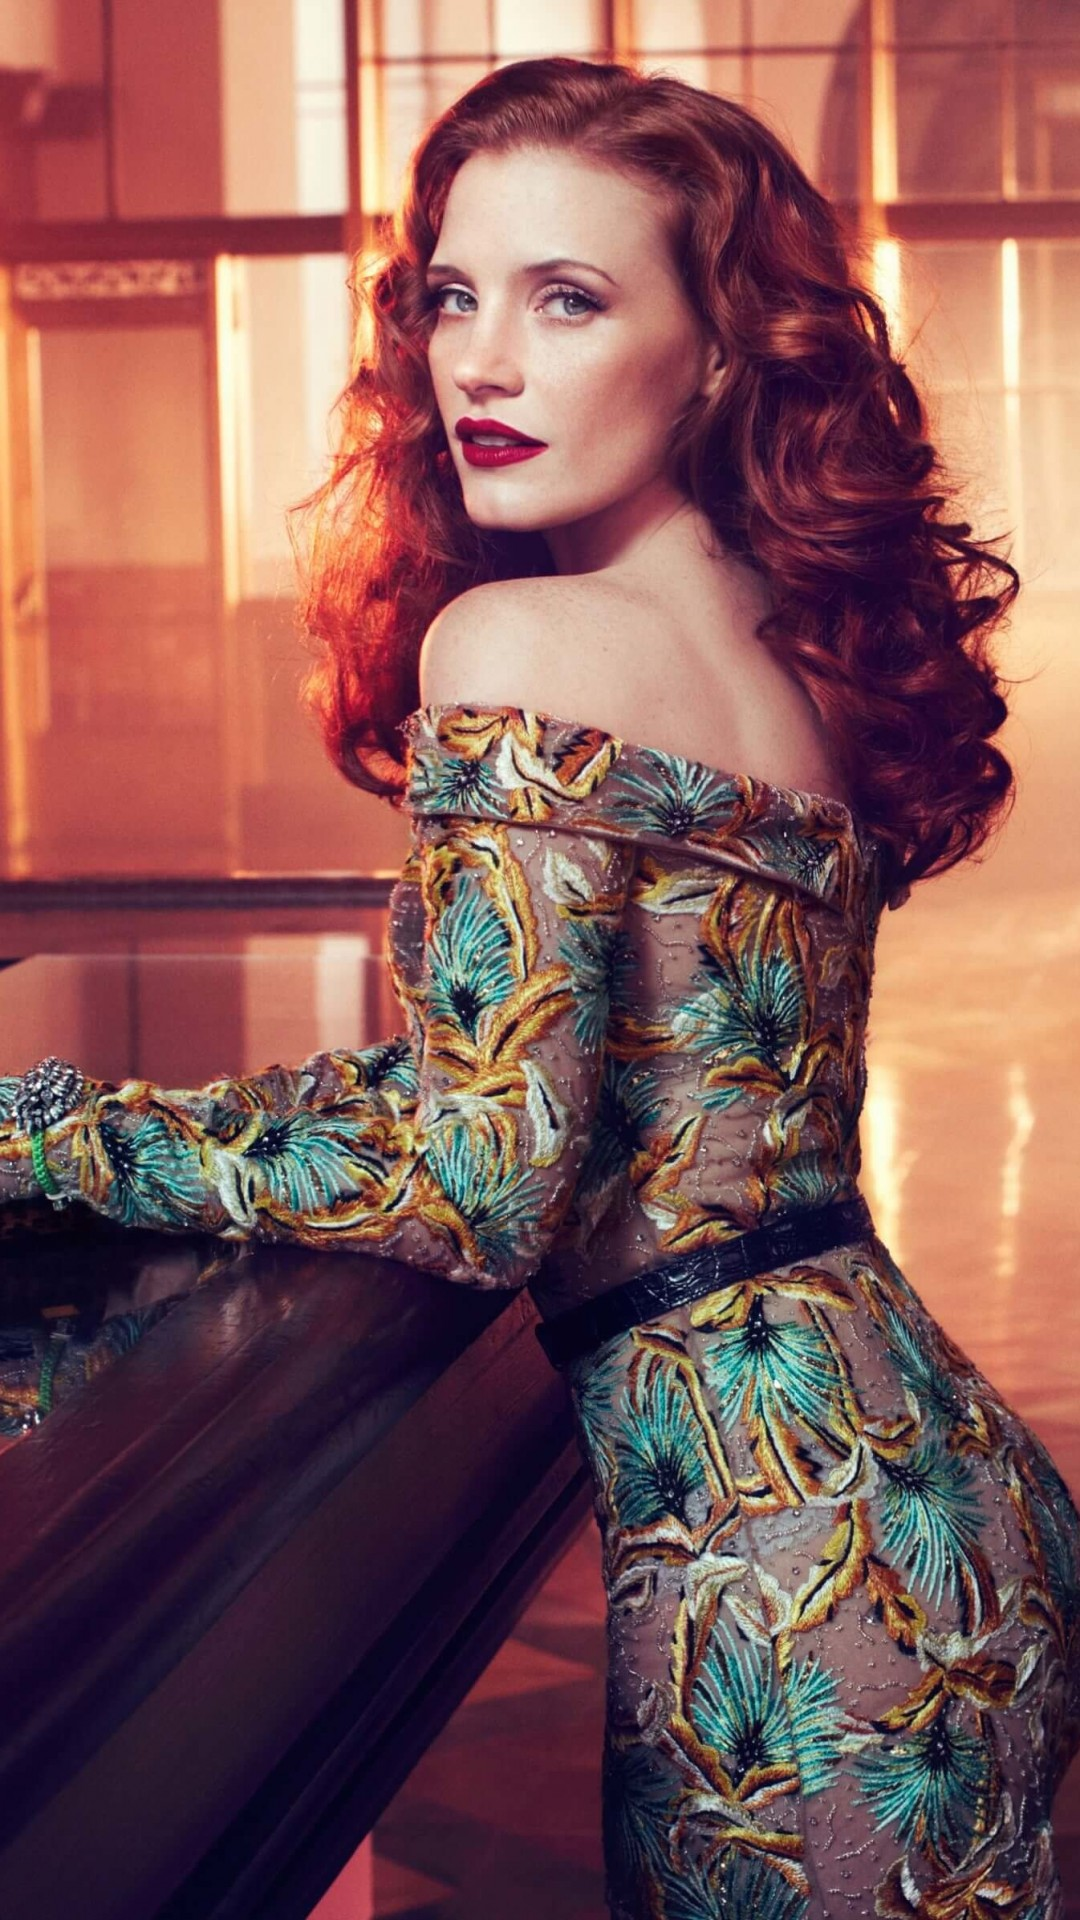 Jessica Chastain Wallpaper for SONY Xperia Z3